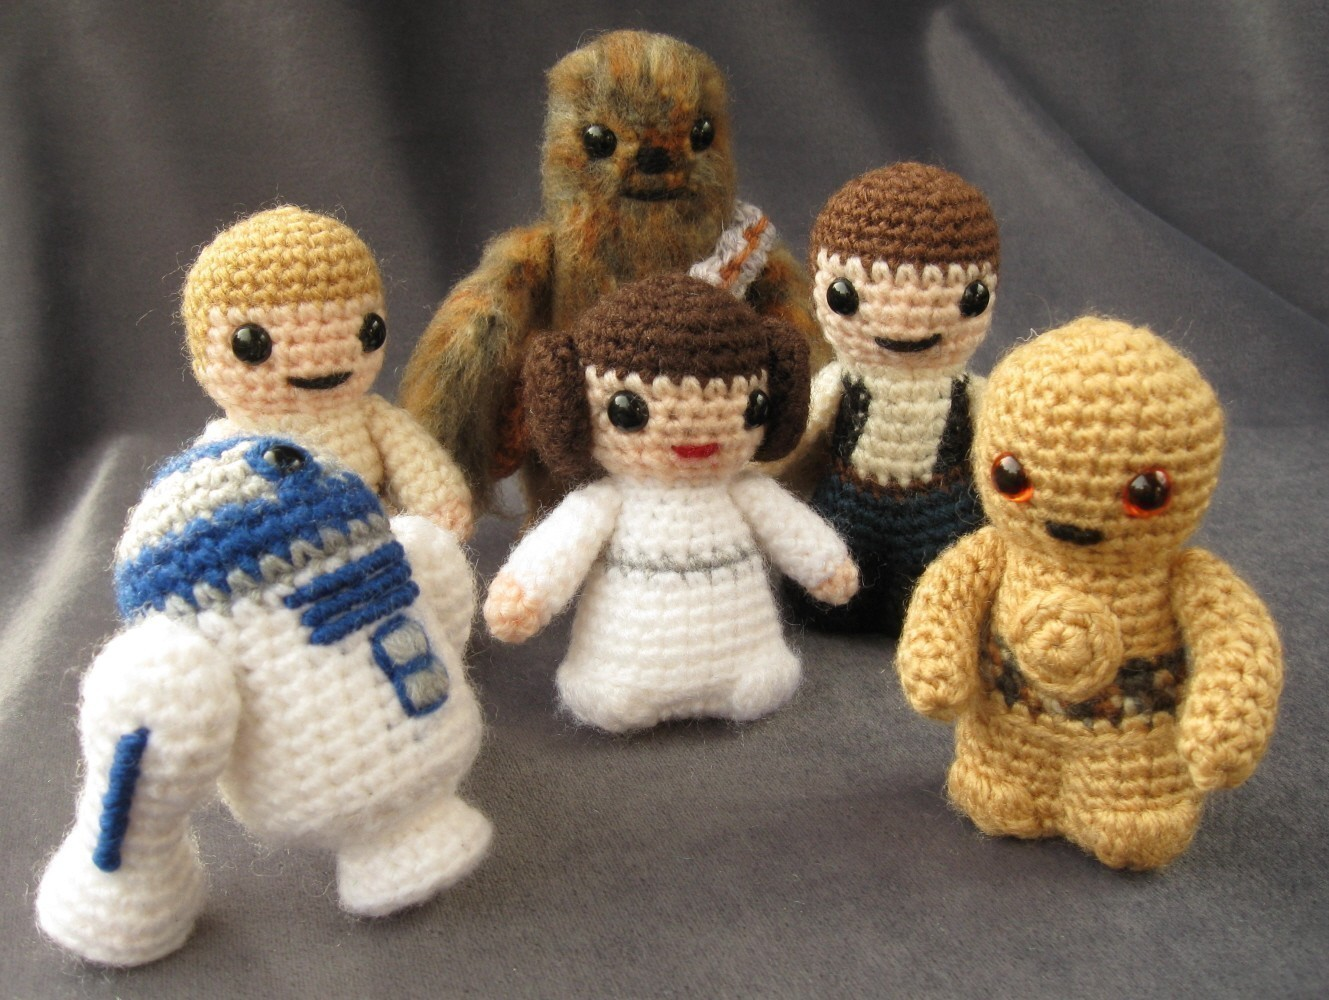 Mini Star Wars Amigurumi Cuddly Is Finally Cool